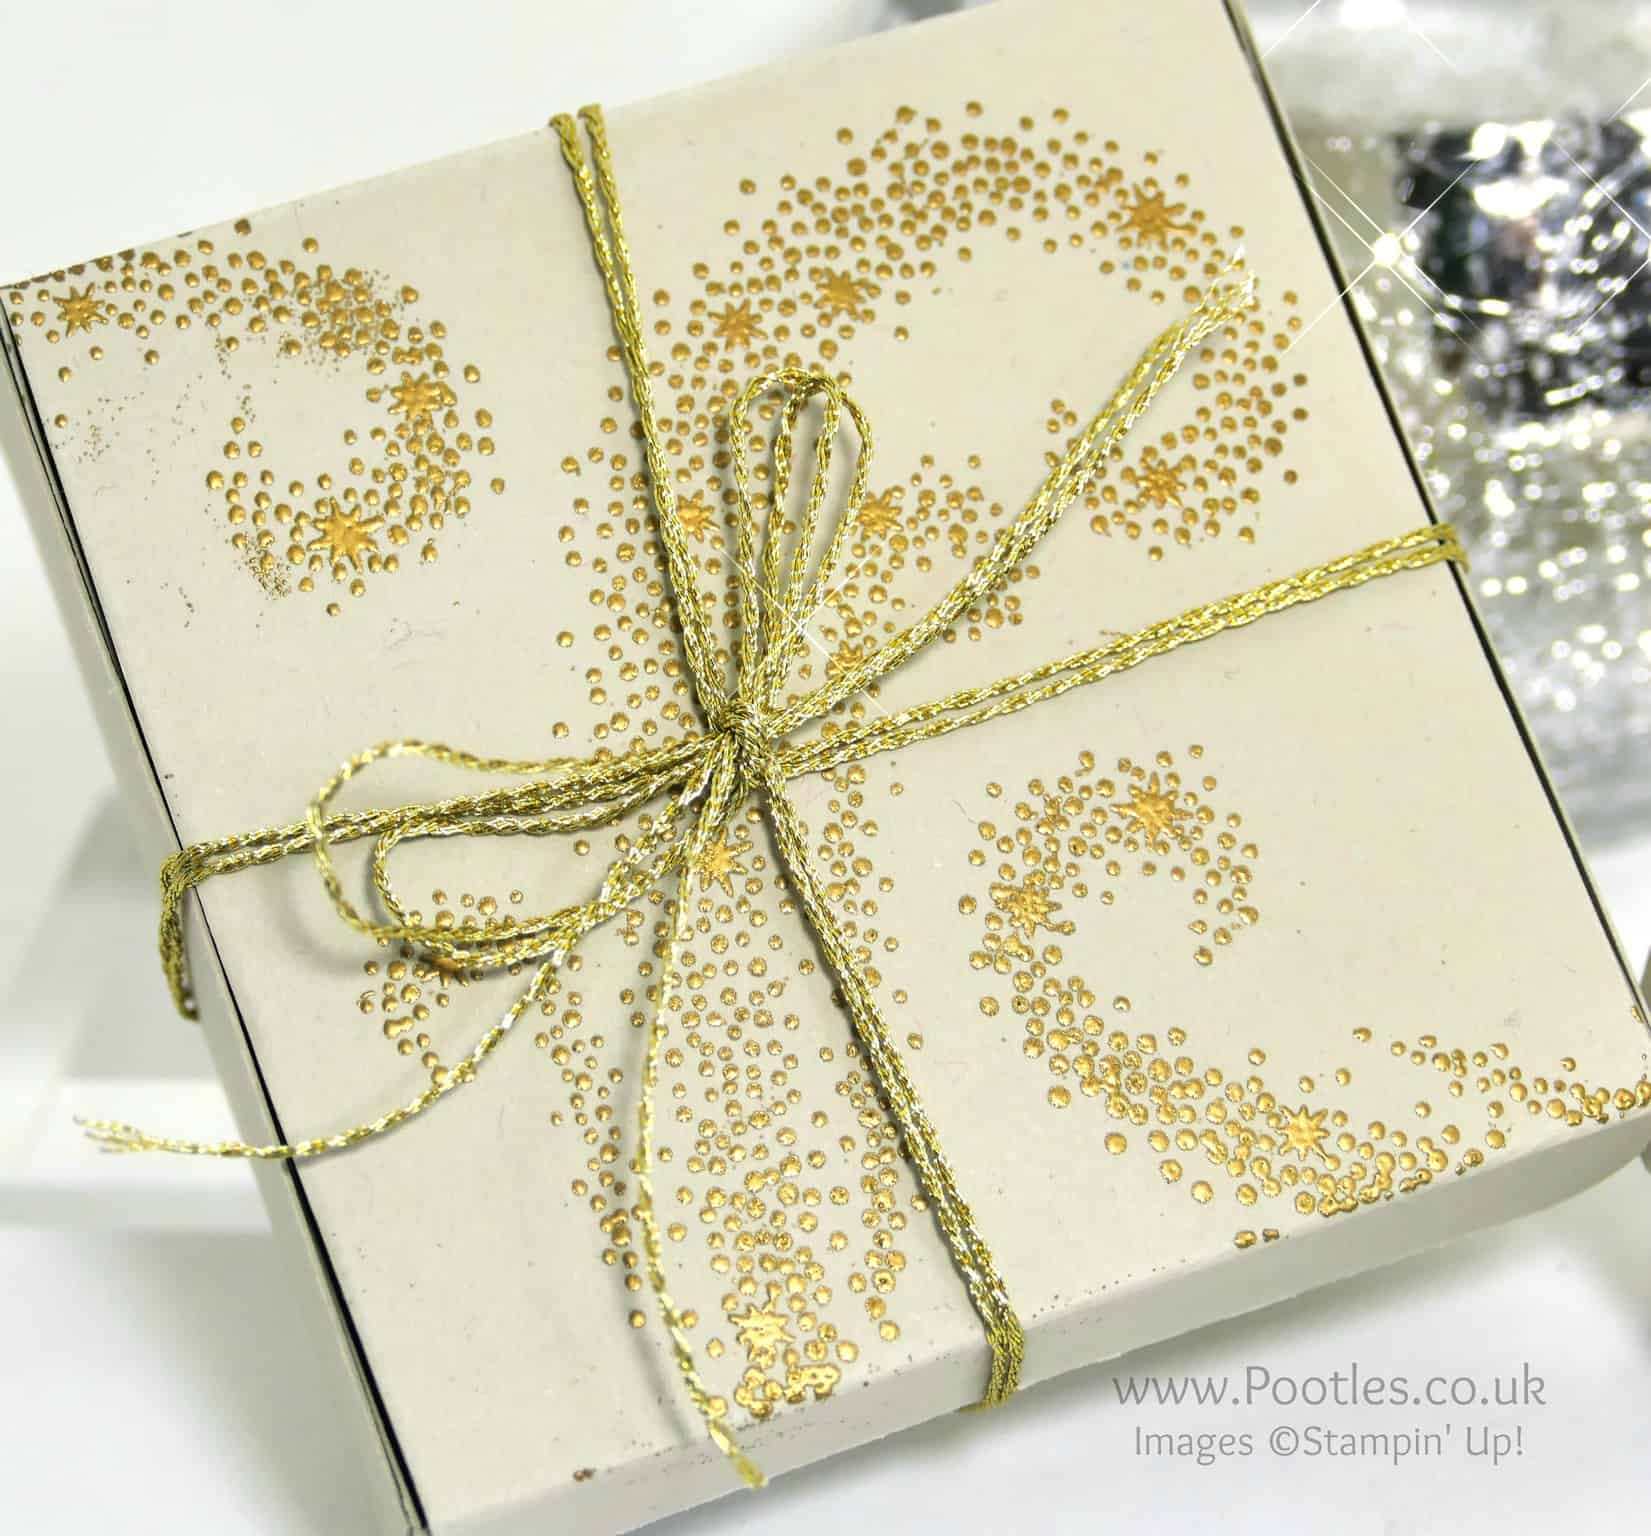 Elegant Gold Embossed Box using Stampin' Up! Star of Light